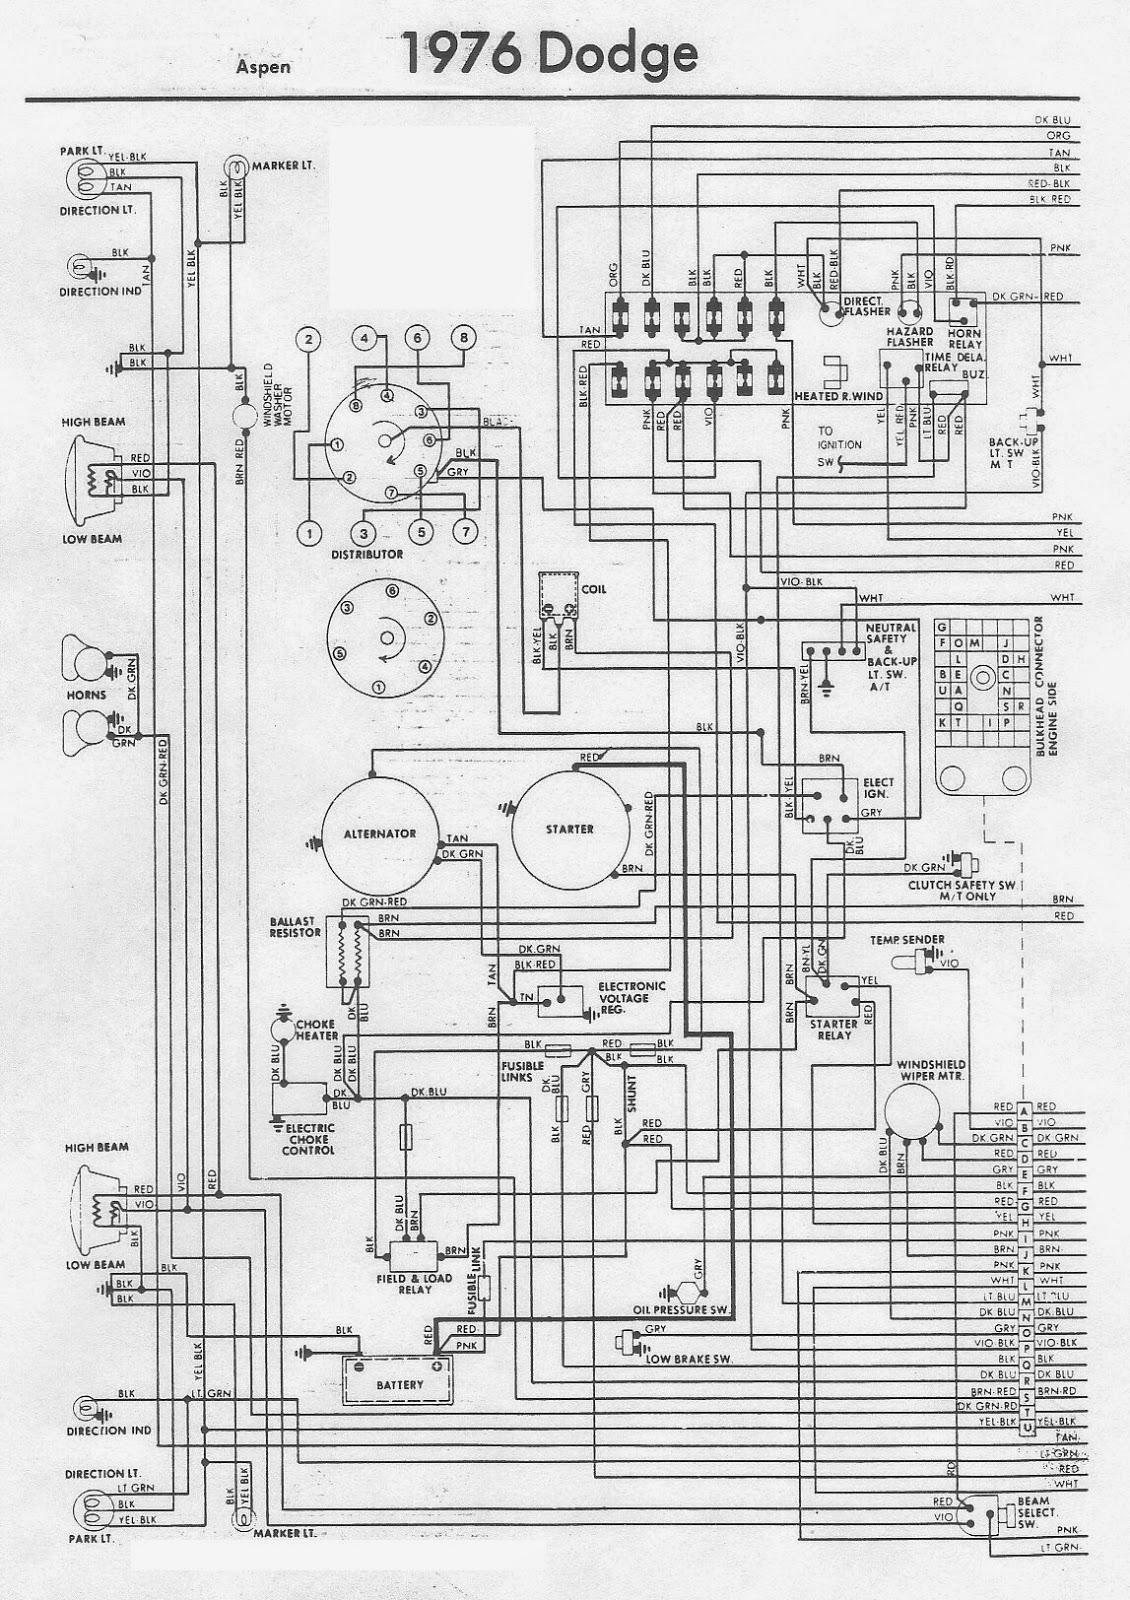 The%2B1976%2BDodge%2BAspen%2BWiring%2BDiagrams%2Ba the 1976 dodge aspen wiring diagram electrical system circuit dodge wiring diagrams at suagrazia.org